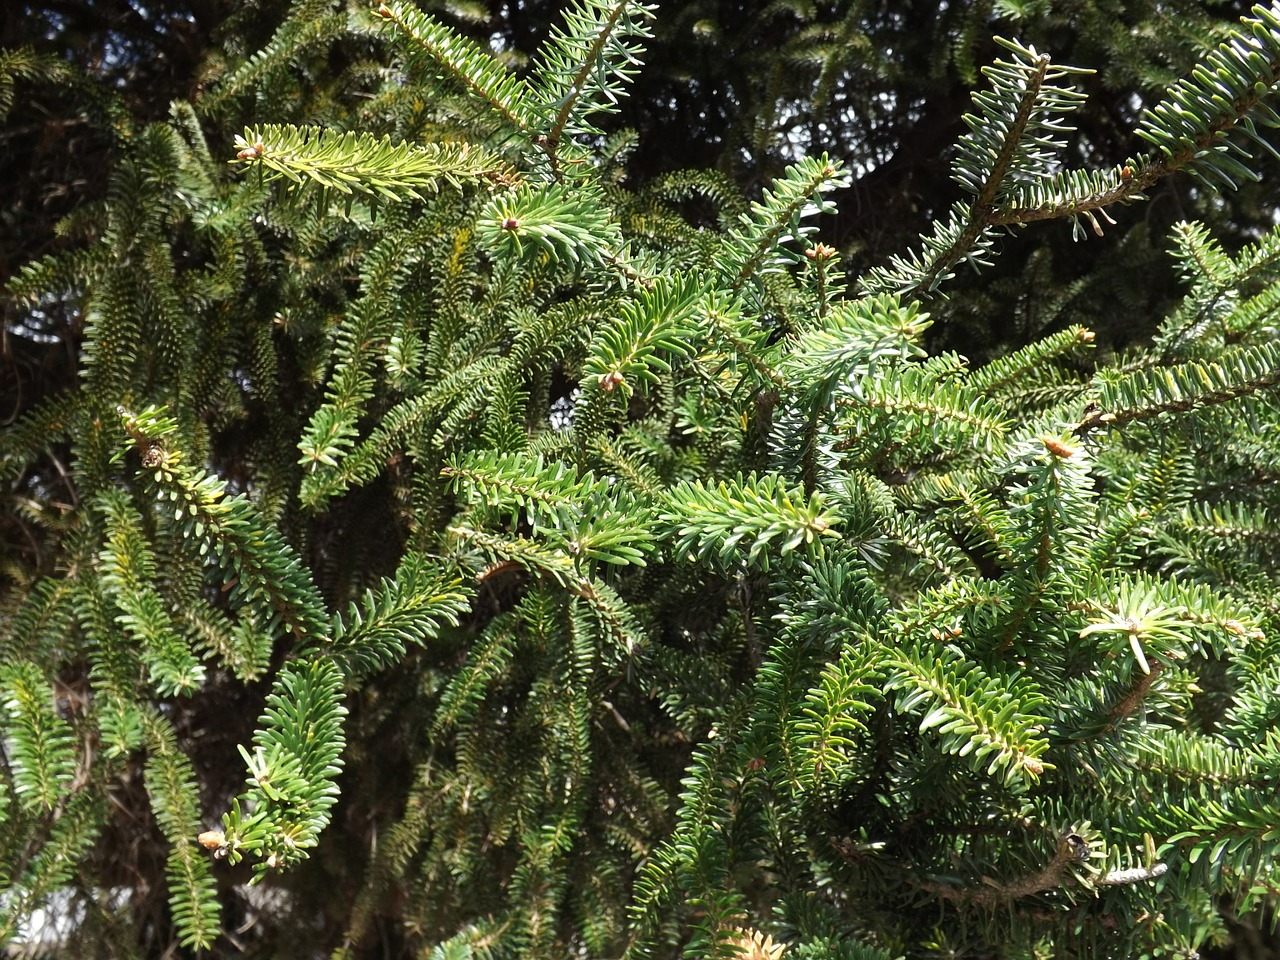 abies pinsaro,spanish fir,tree,forest,green,evergreen,fir tree,free pictures, free photos, free images, royalty free, free illustrations, public domain